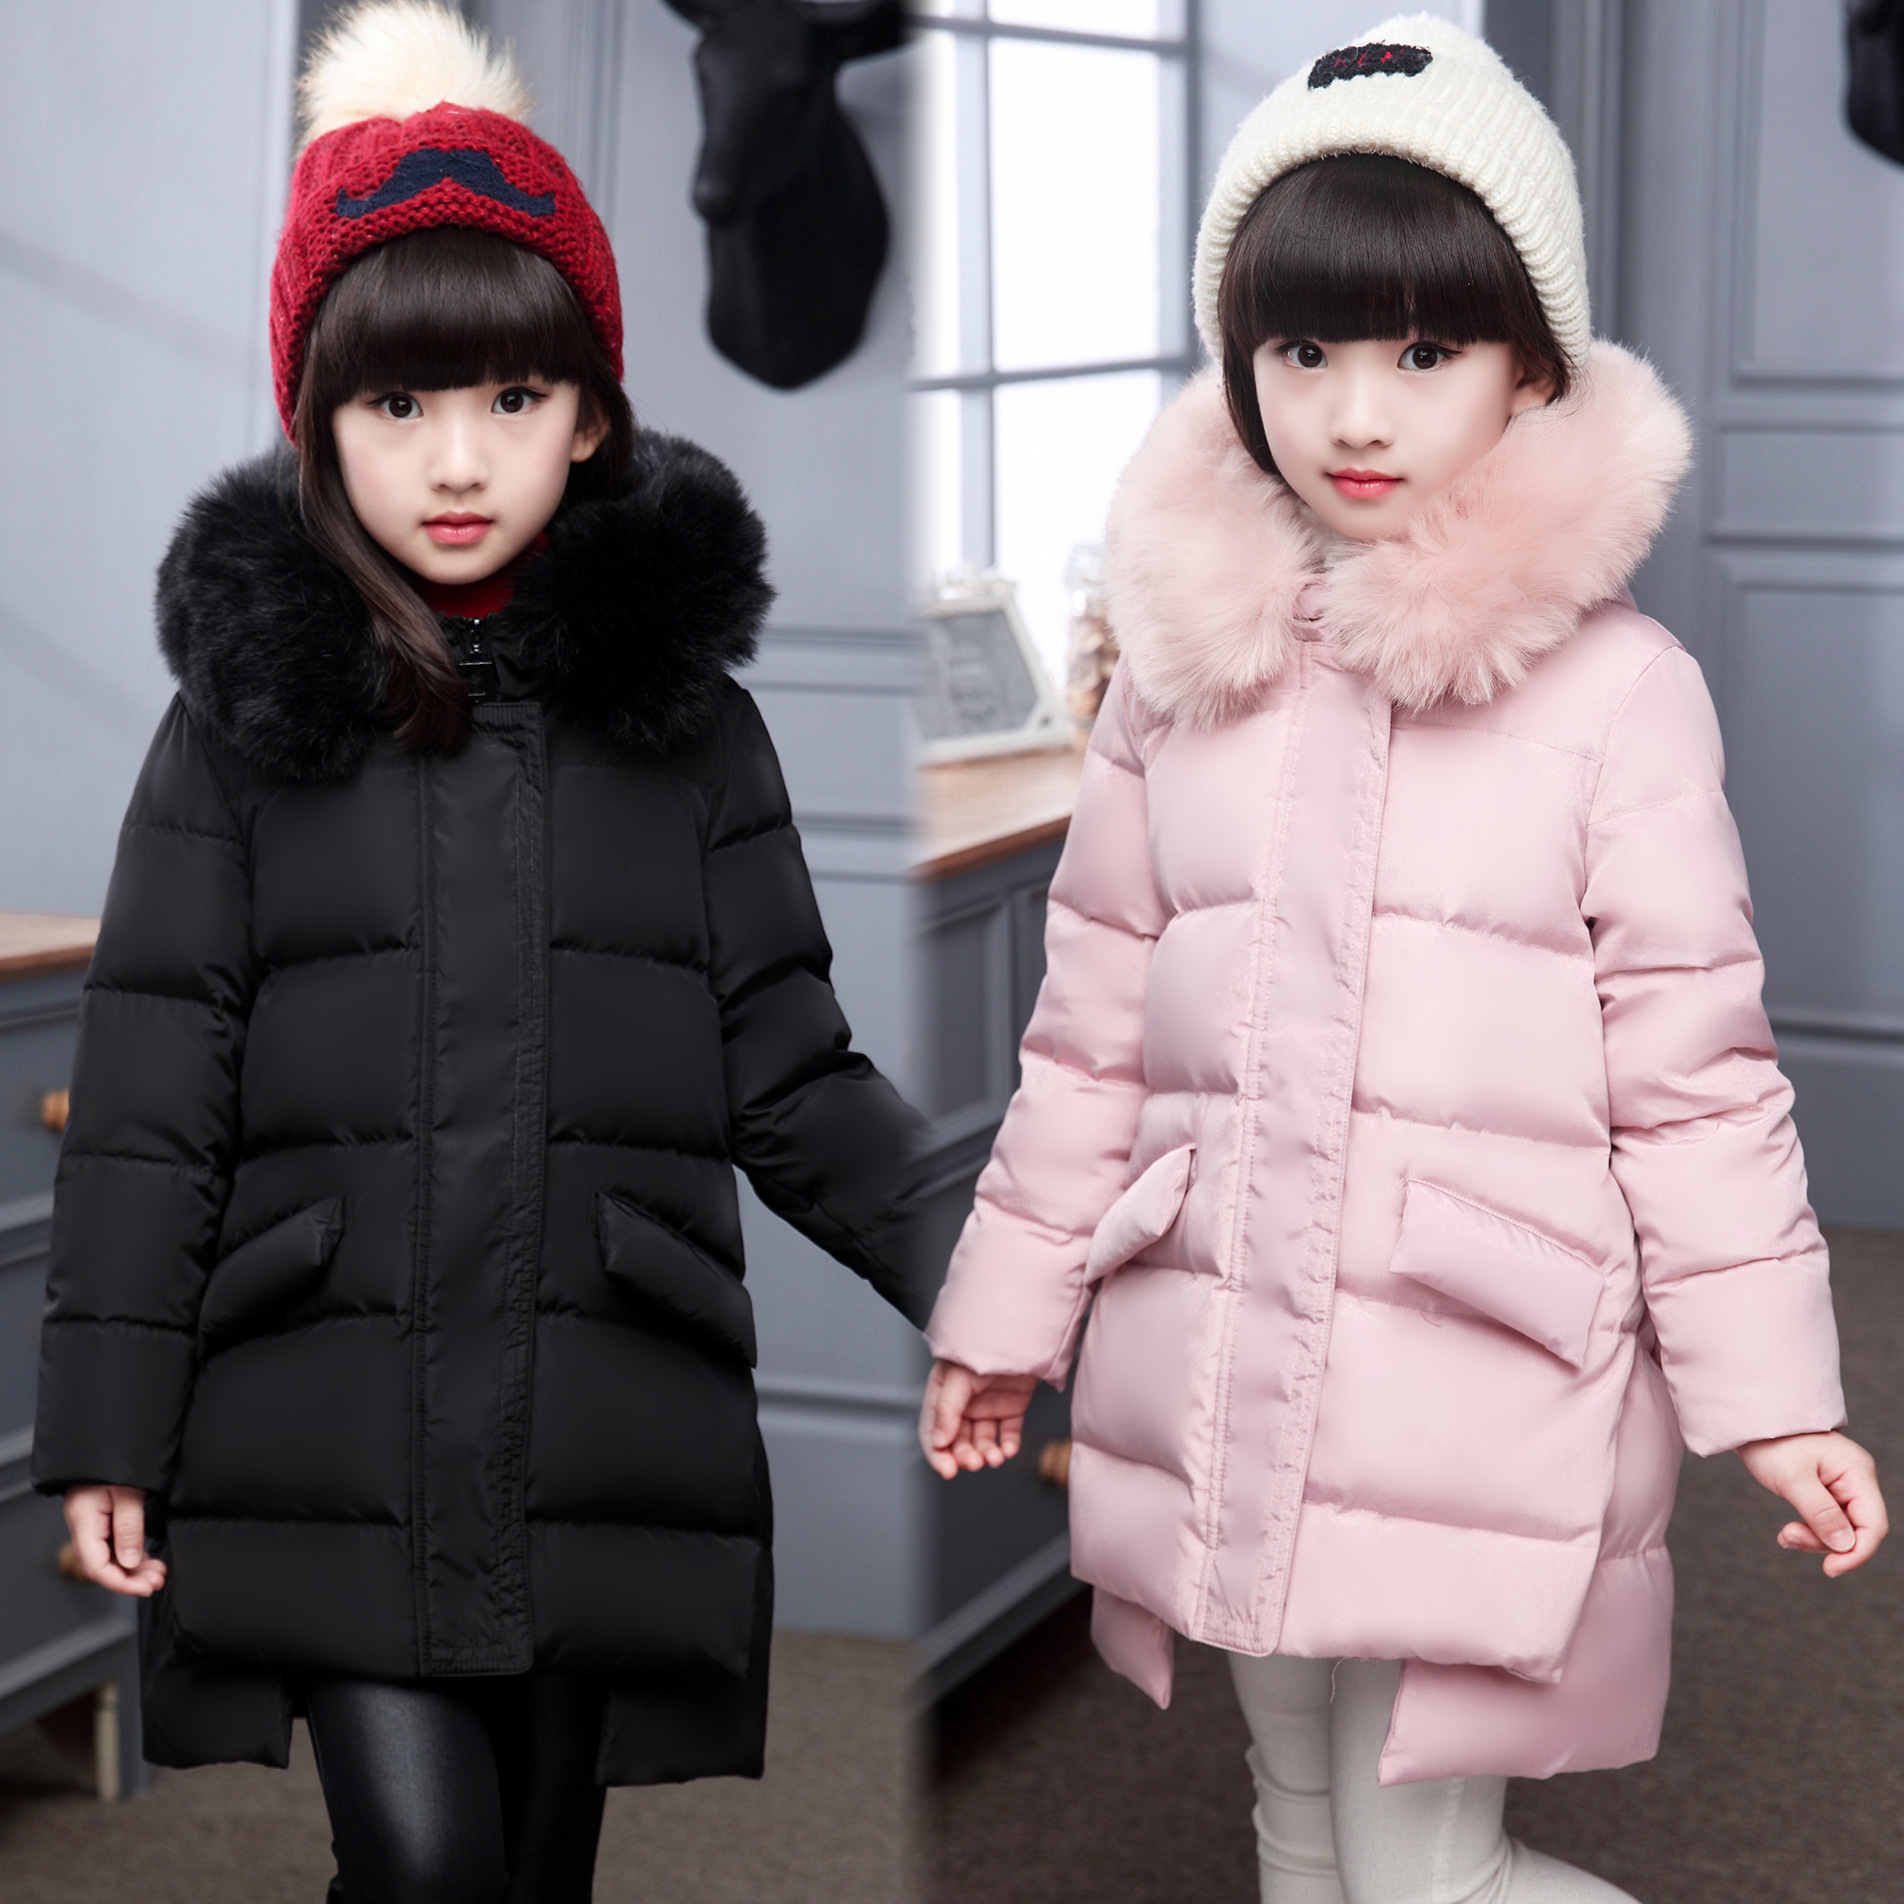 Girls Winter Thicker Warm Coat Children's Parkas Winter Down Jackets For Girls Girls Long Down Jacket with Big Fur Collar elitedisplay